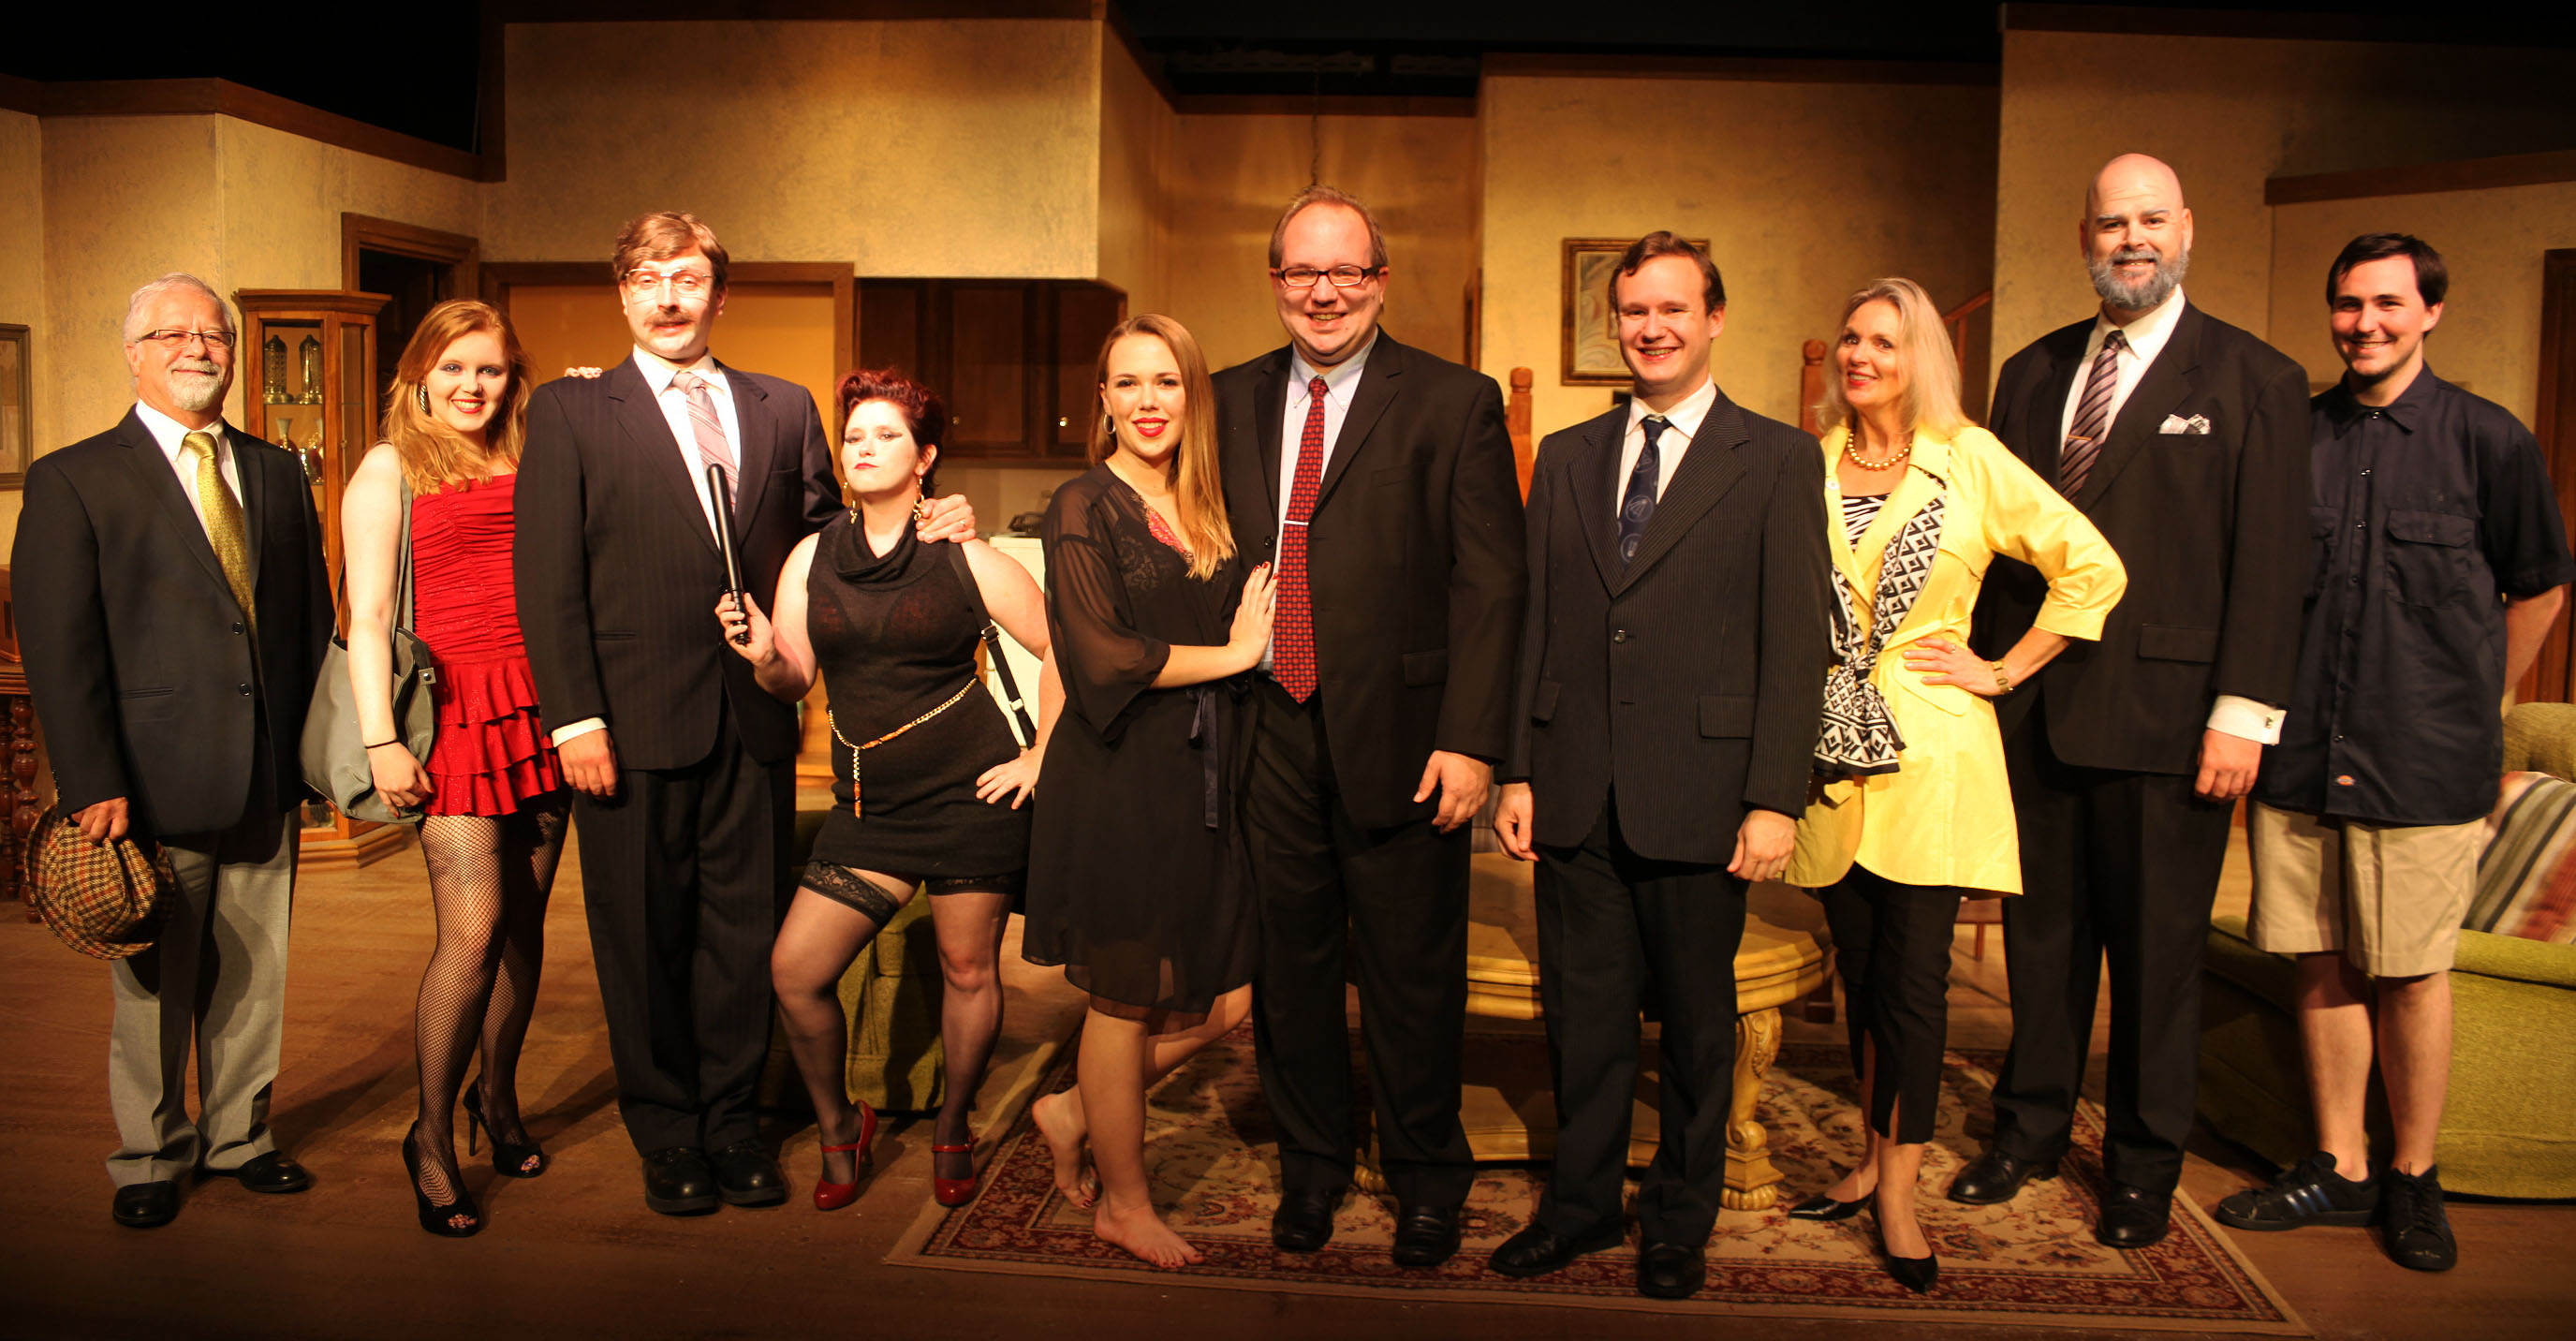 No Sex cast: Marty Fillman as Superintendent Paul; Nicole Payne plays Barbara; Jan Peter Buksar as Mr. Needham; Kelly Kates as Susan; Kathryn Suddard as Frances Hunter; Matthew Whaley as Peter Hunter; Micah Laird as Brian Runnicles; Linda Mignon as Eleanor Hunter; James Desmond as Leslie Bromhead; and Aaron O'Connell as Delivery Man. Photos by Renee Unsworth